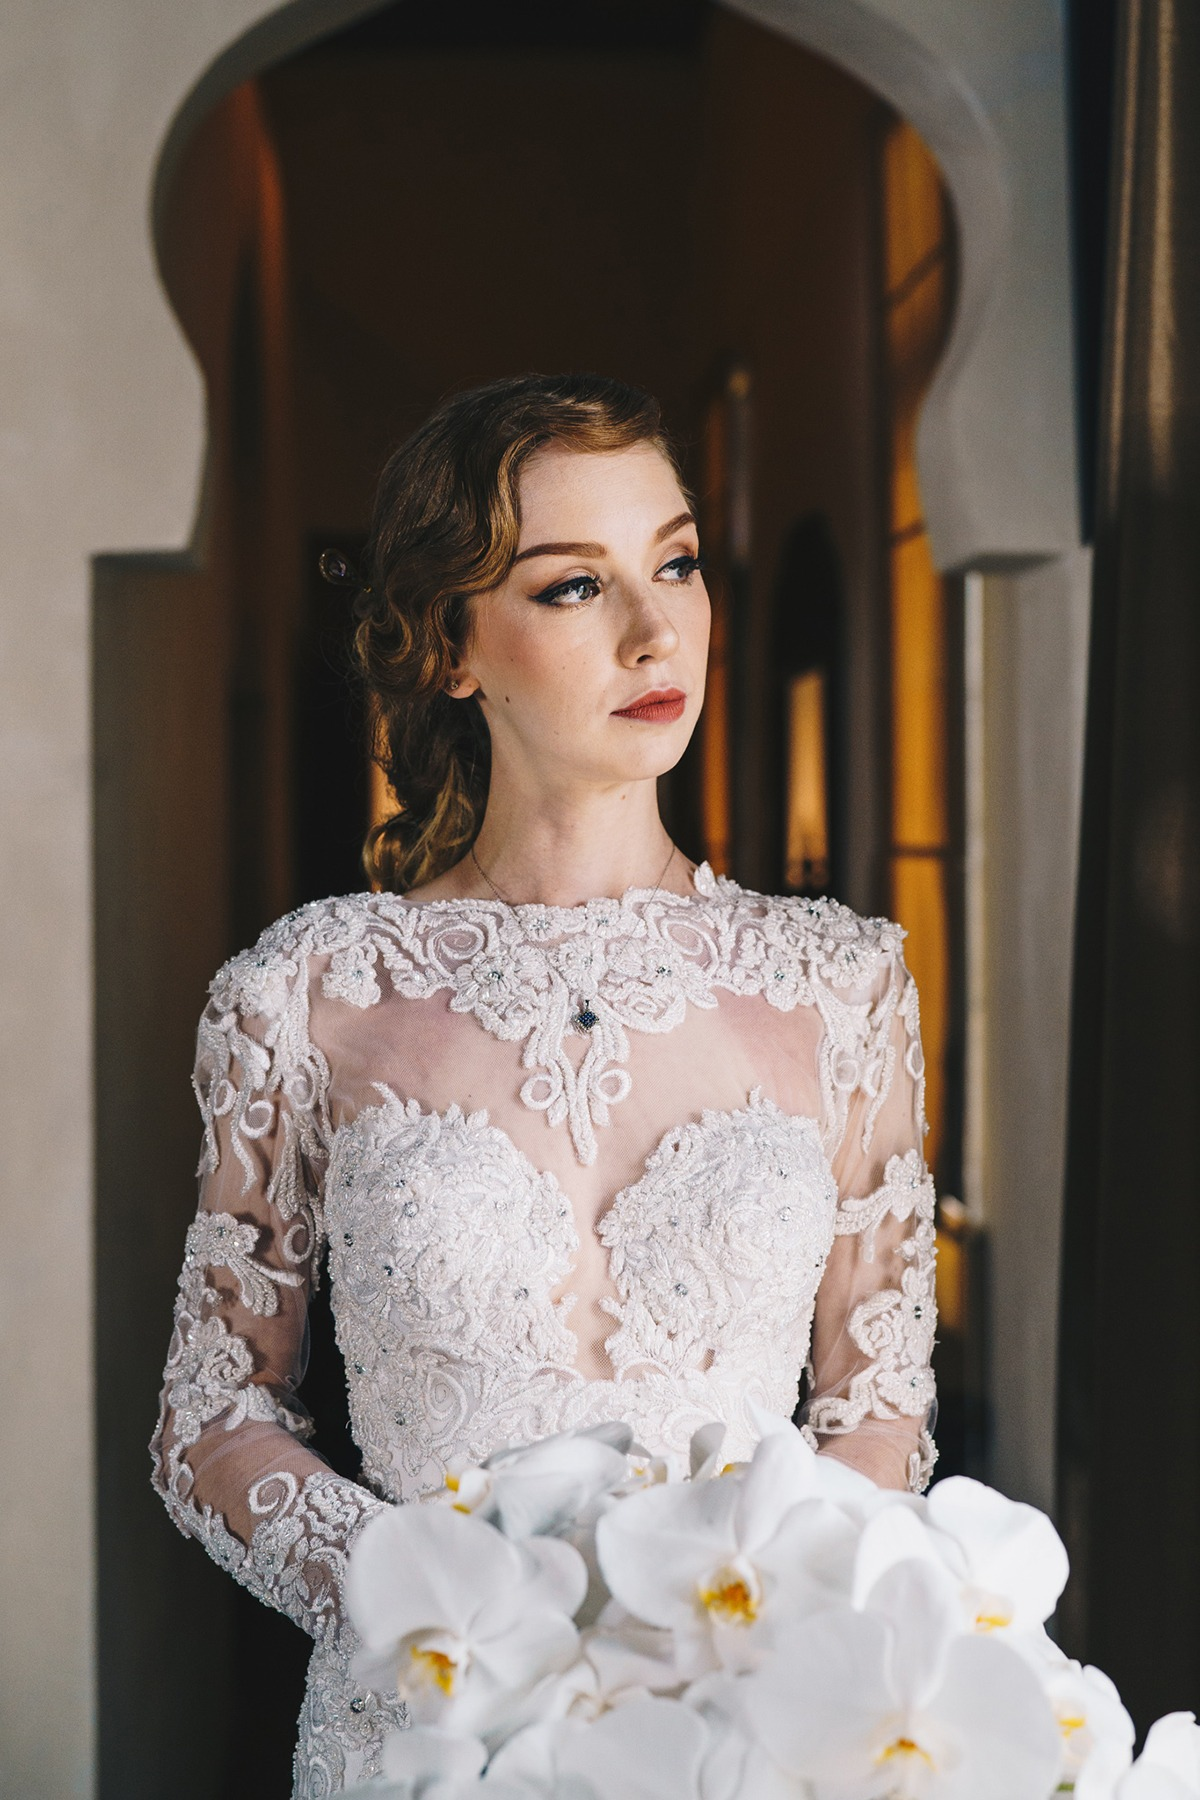 Glam bride in lace